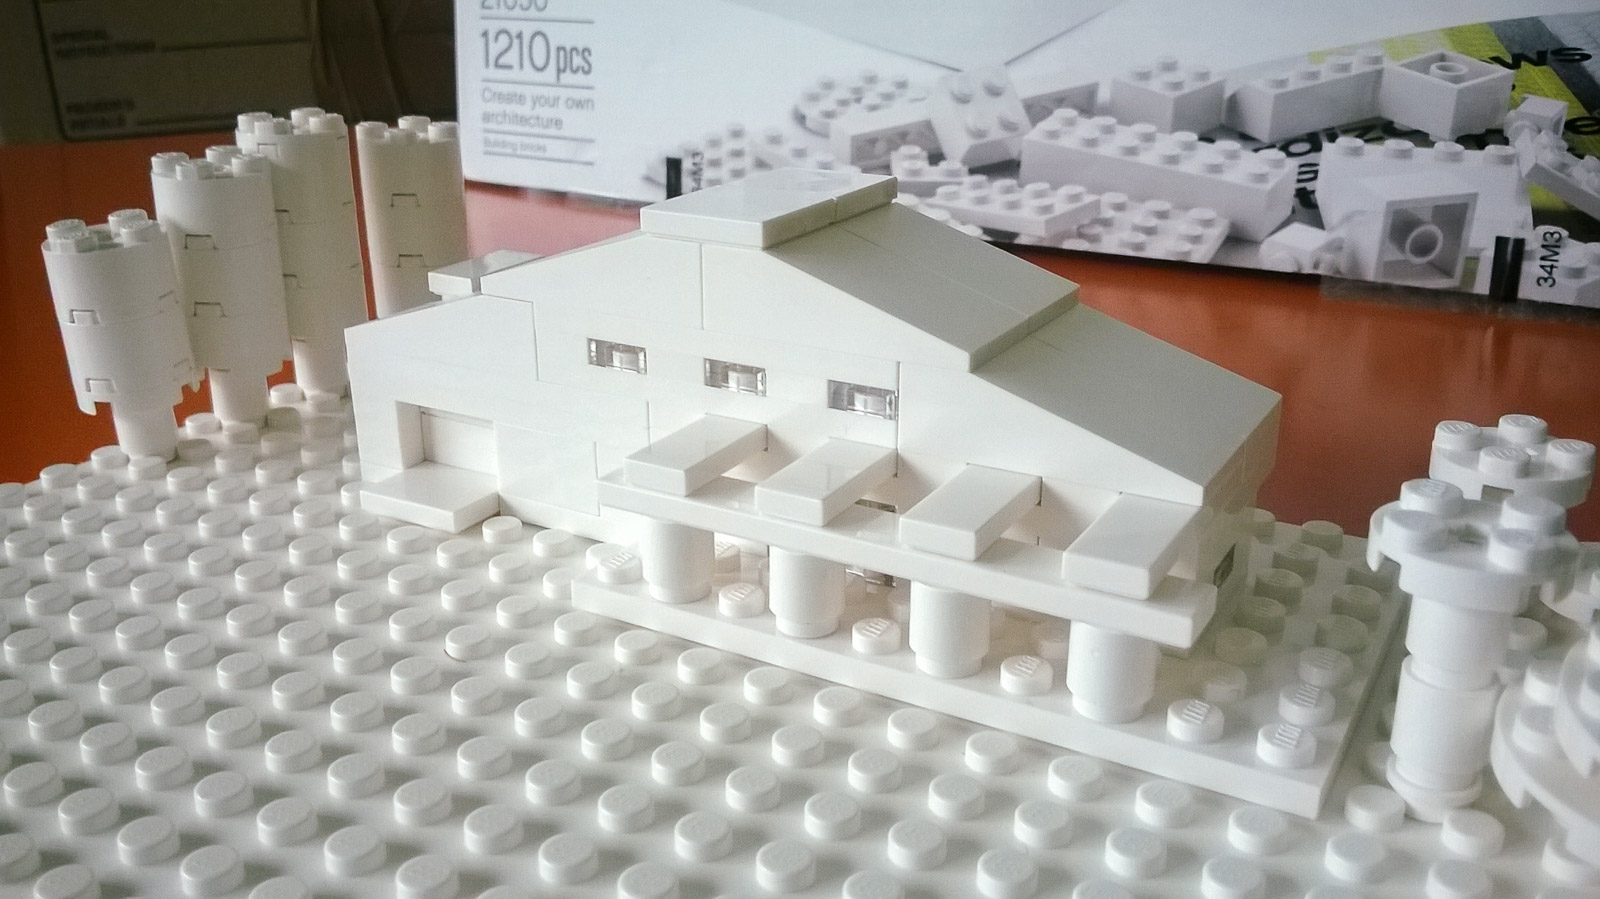 Perfect Architecture Studio Lego Project Was A Recreation Of Home Intended Inspiration Decorating